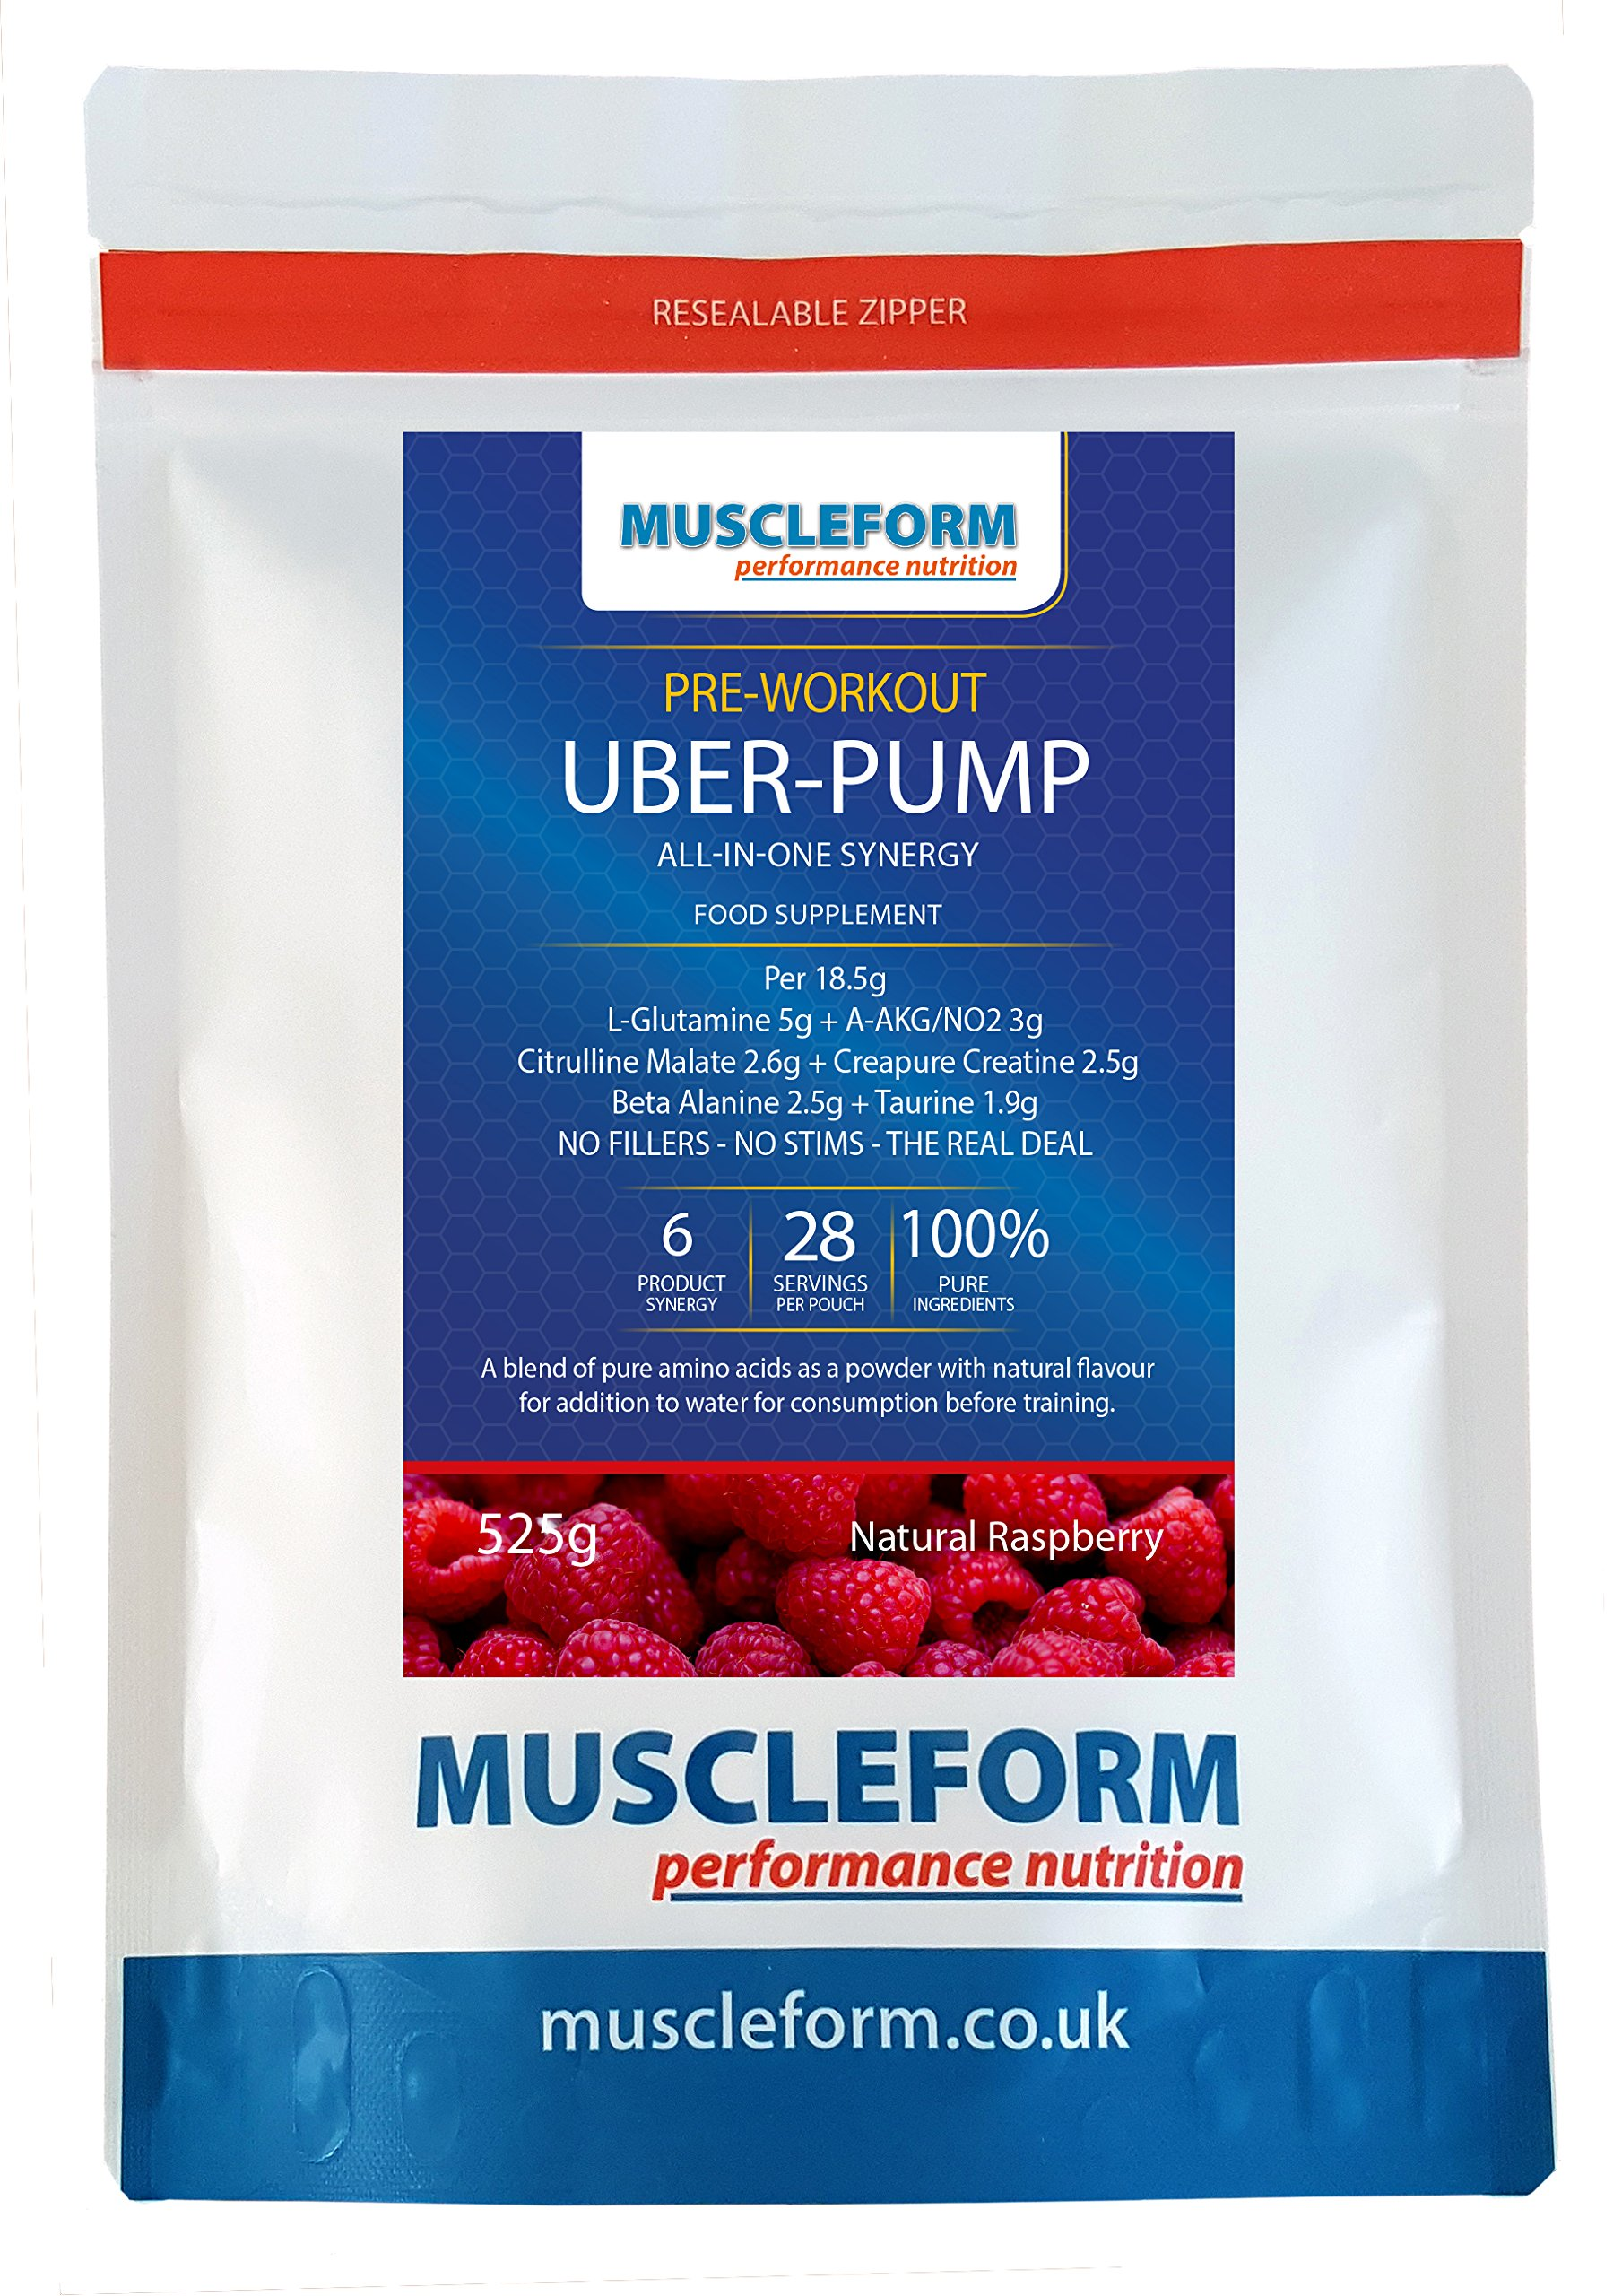 Muscleform UBER-Pump All in One Pre Workout Pump – 525g resealable Pouch – Berry Flavour – Fast Delivery | Free Express…